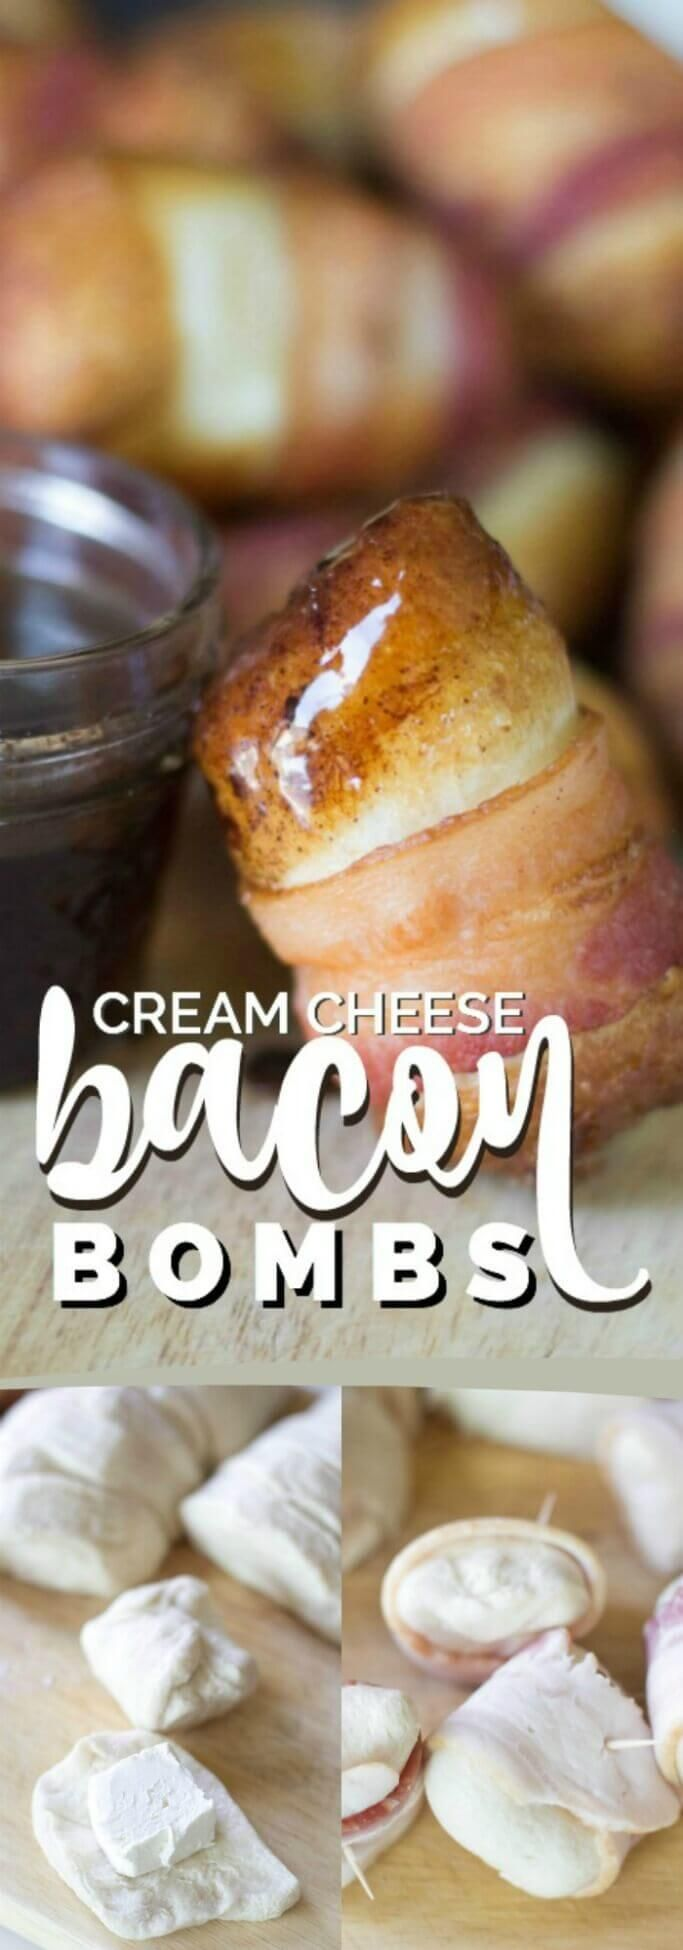 Cream Cheese Bacon Bombs                                                       …